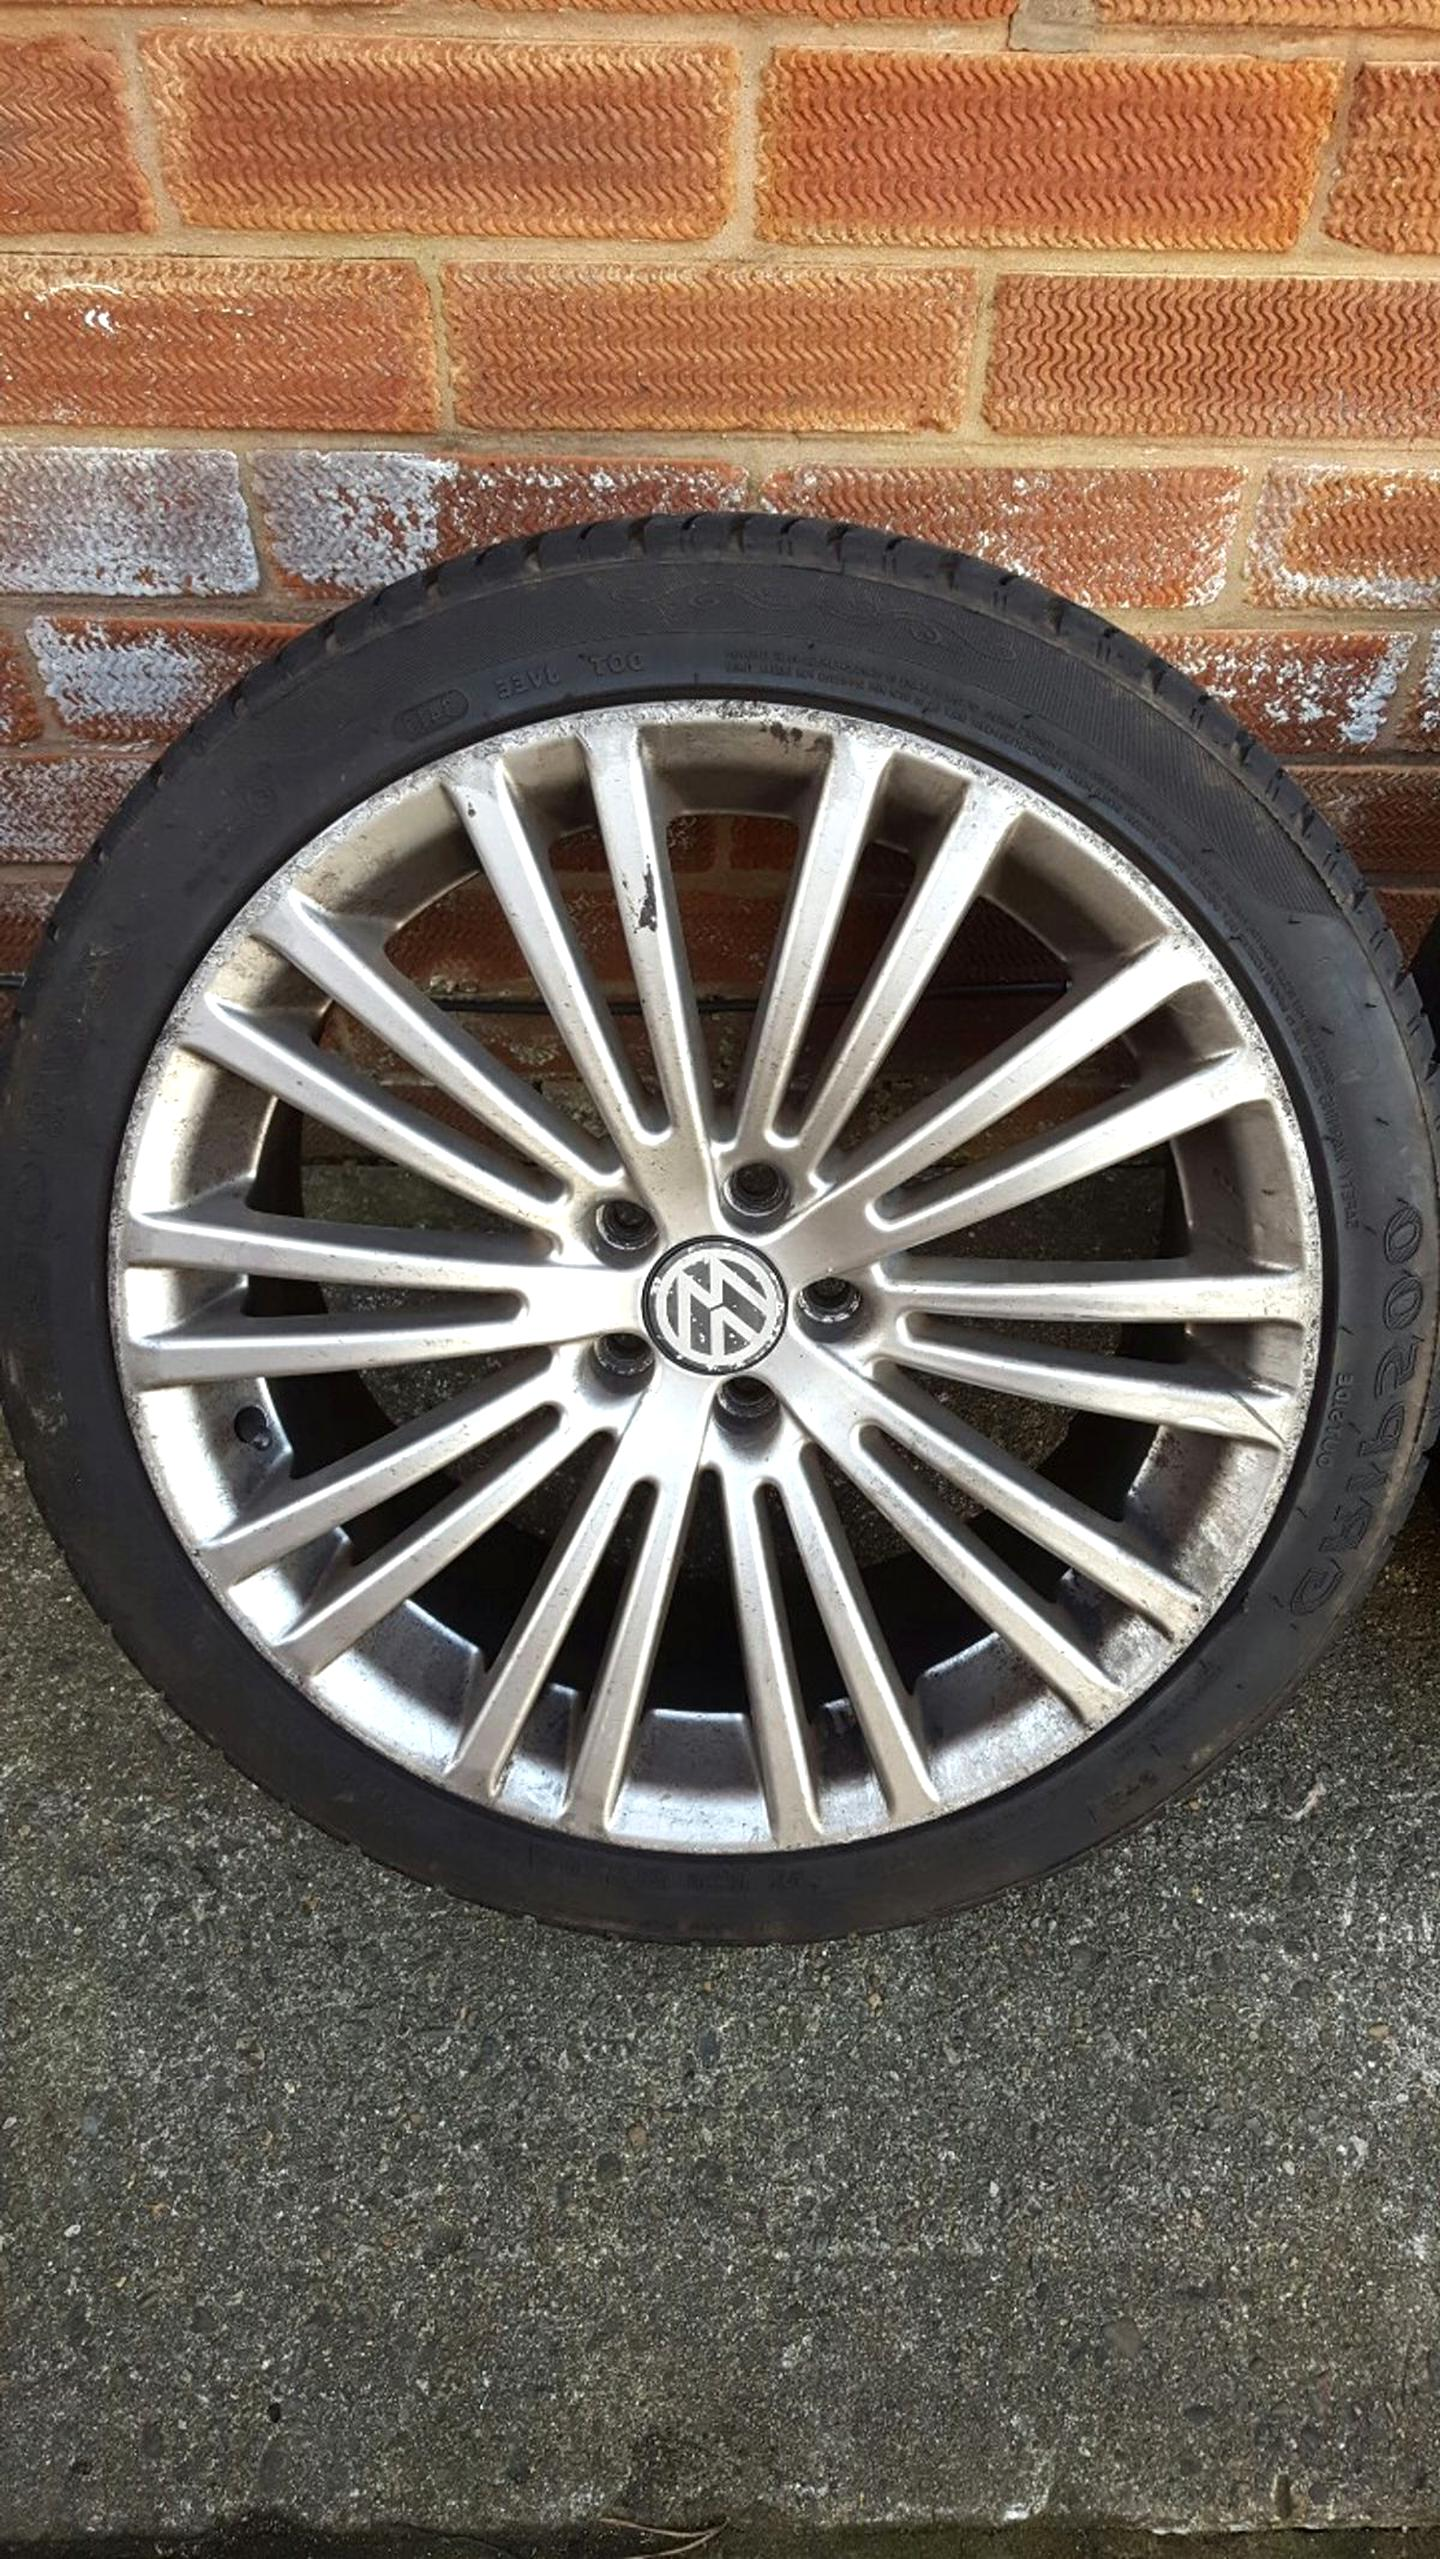 r32 wheels for sale